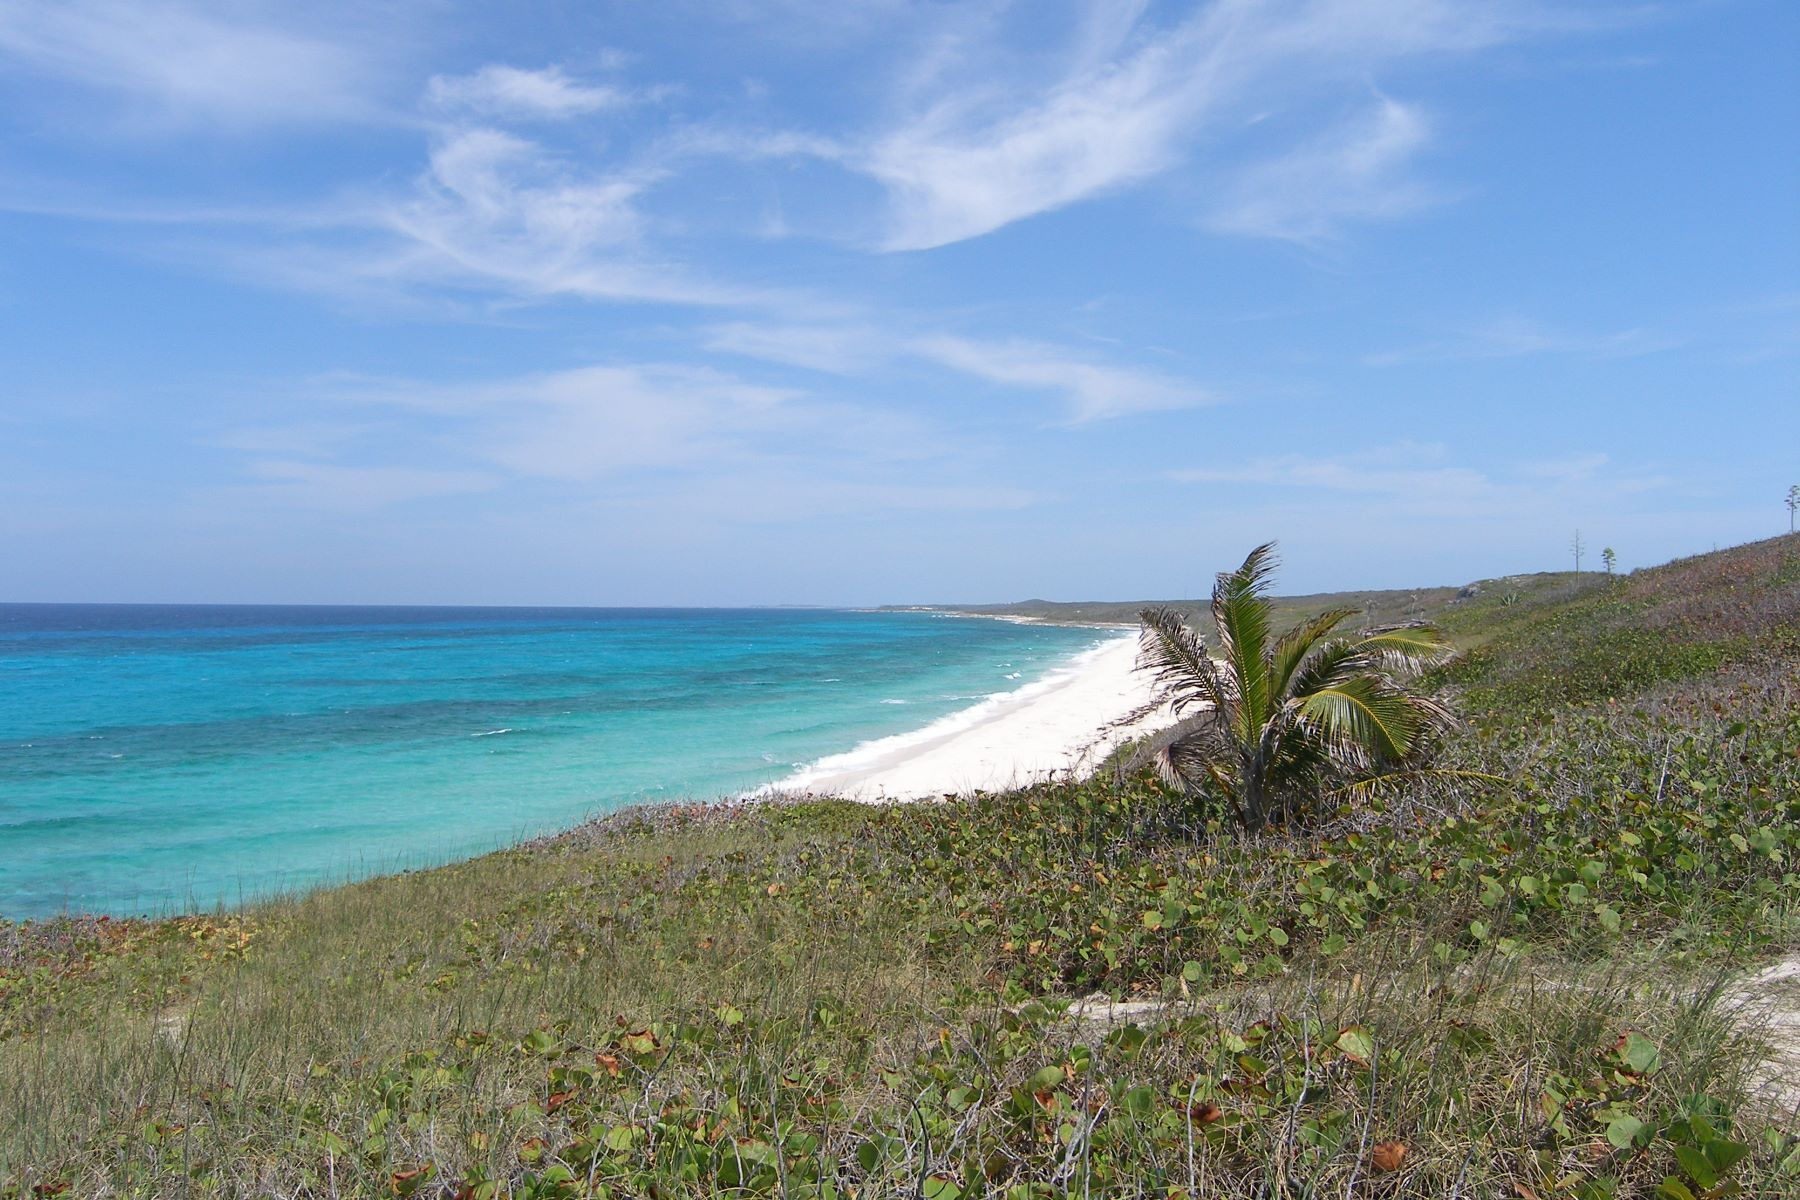 Additional photo for property listing at Lots 13,14,& 15, Block 79, Section J Gregory Town, Eleuthera Bahamas